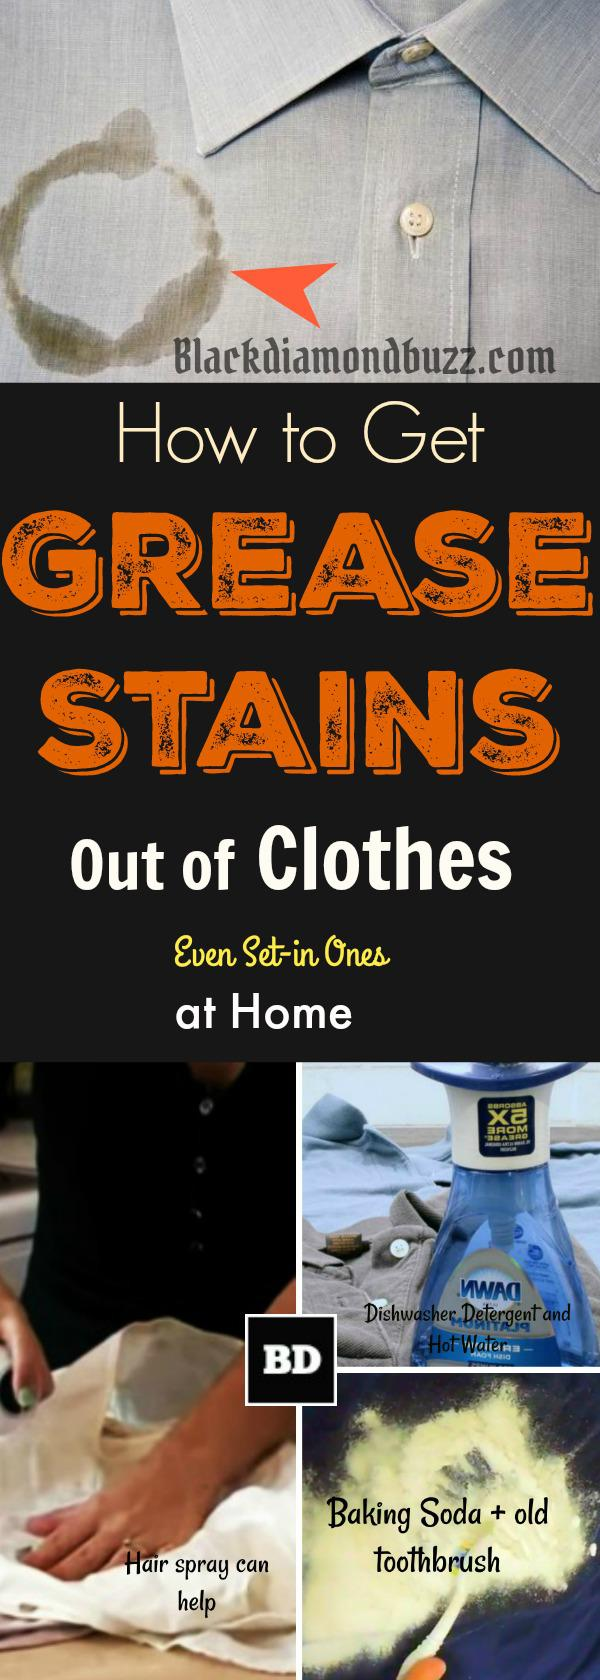 Get Food Grease Stains Out Clothes